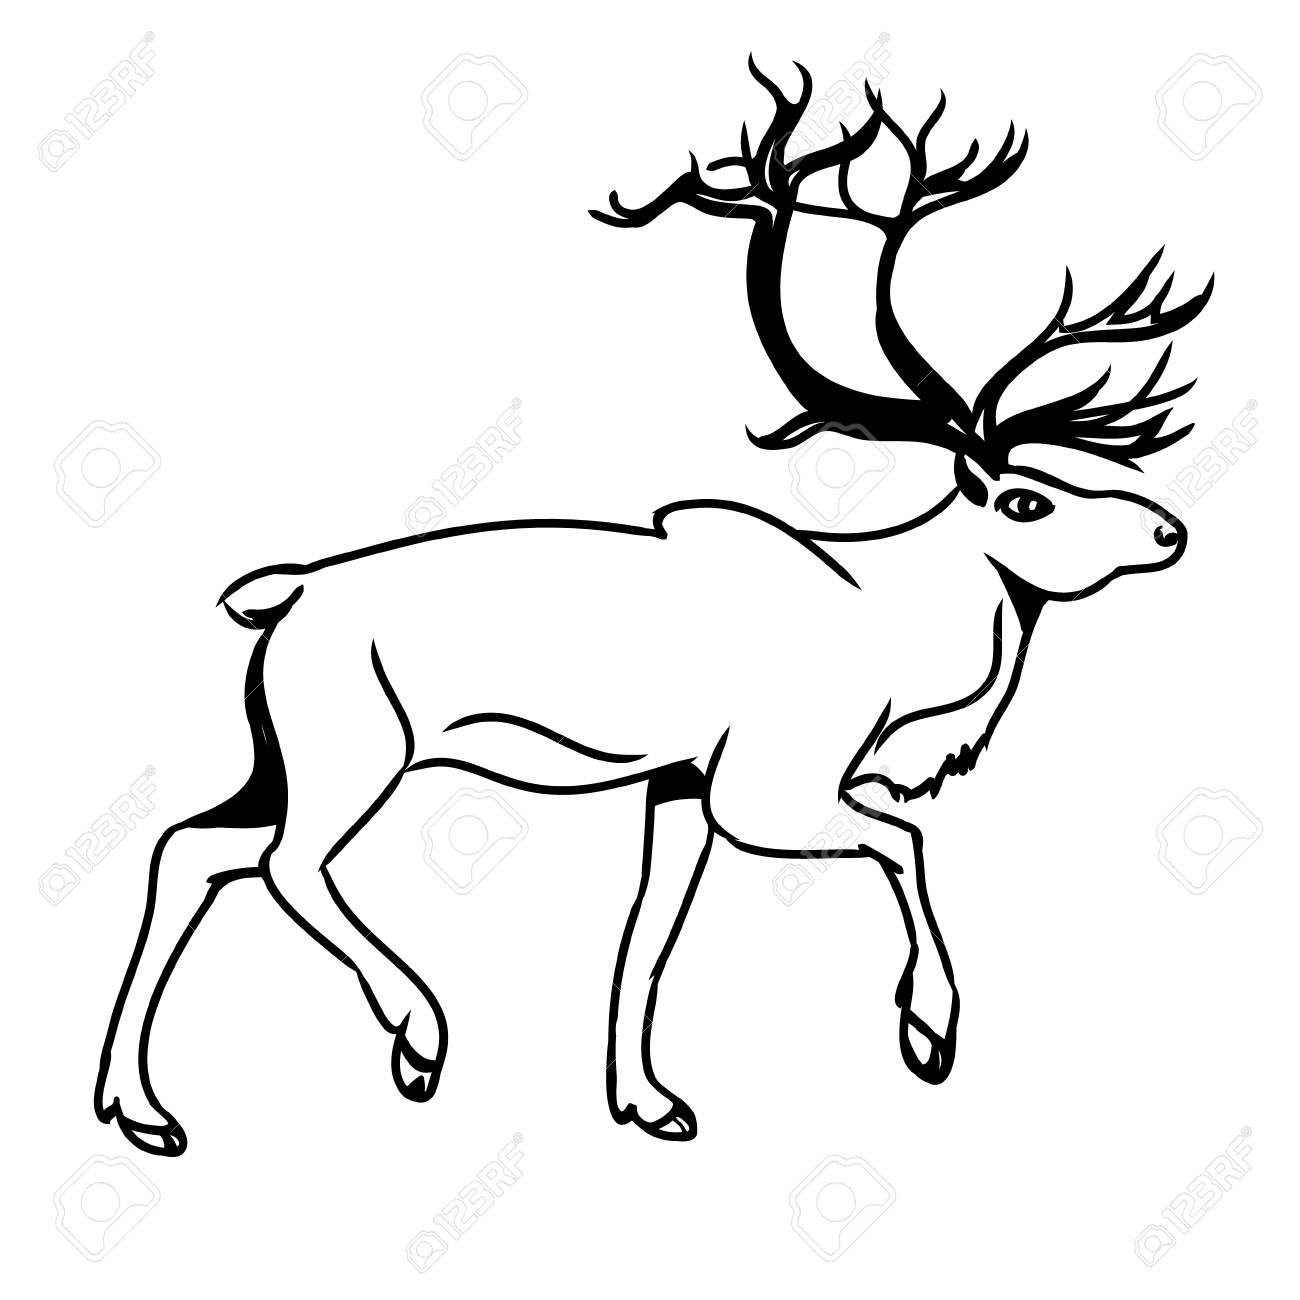 1300x1300 Graphic Image Of Deer. Black Outline Of A Reindeer On A White